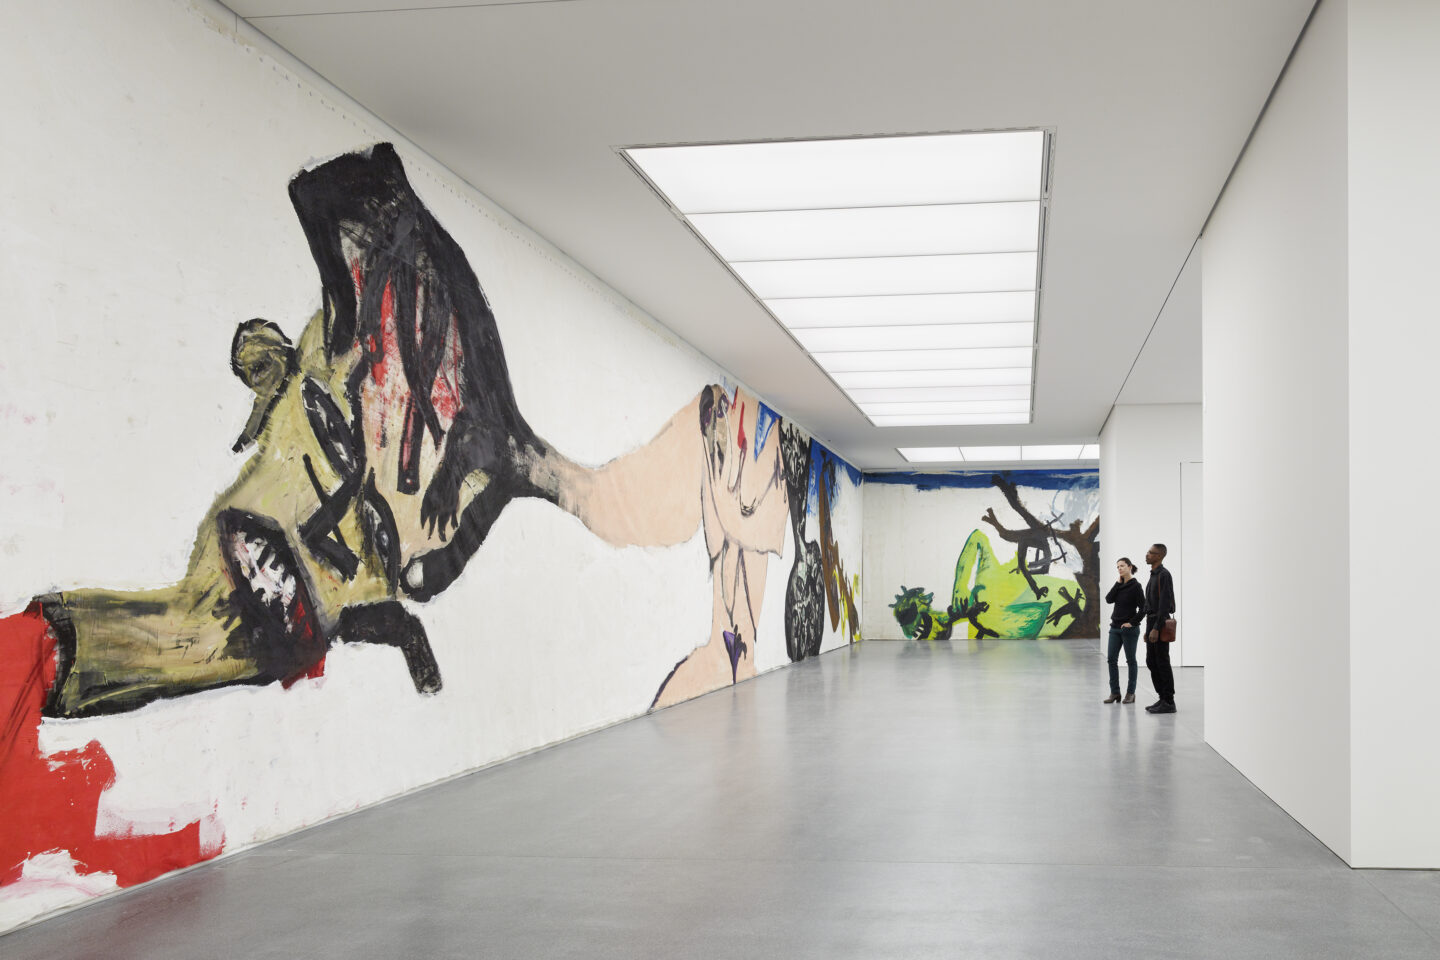 Exhibition View Martin Disler Soloshow «The Environment of Love» at Bündner Kunstmuseum, Chur, 2019 / Photo: Ralph Feiner ; Bündner Kunstmuseum Chur